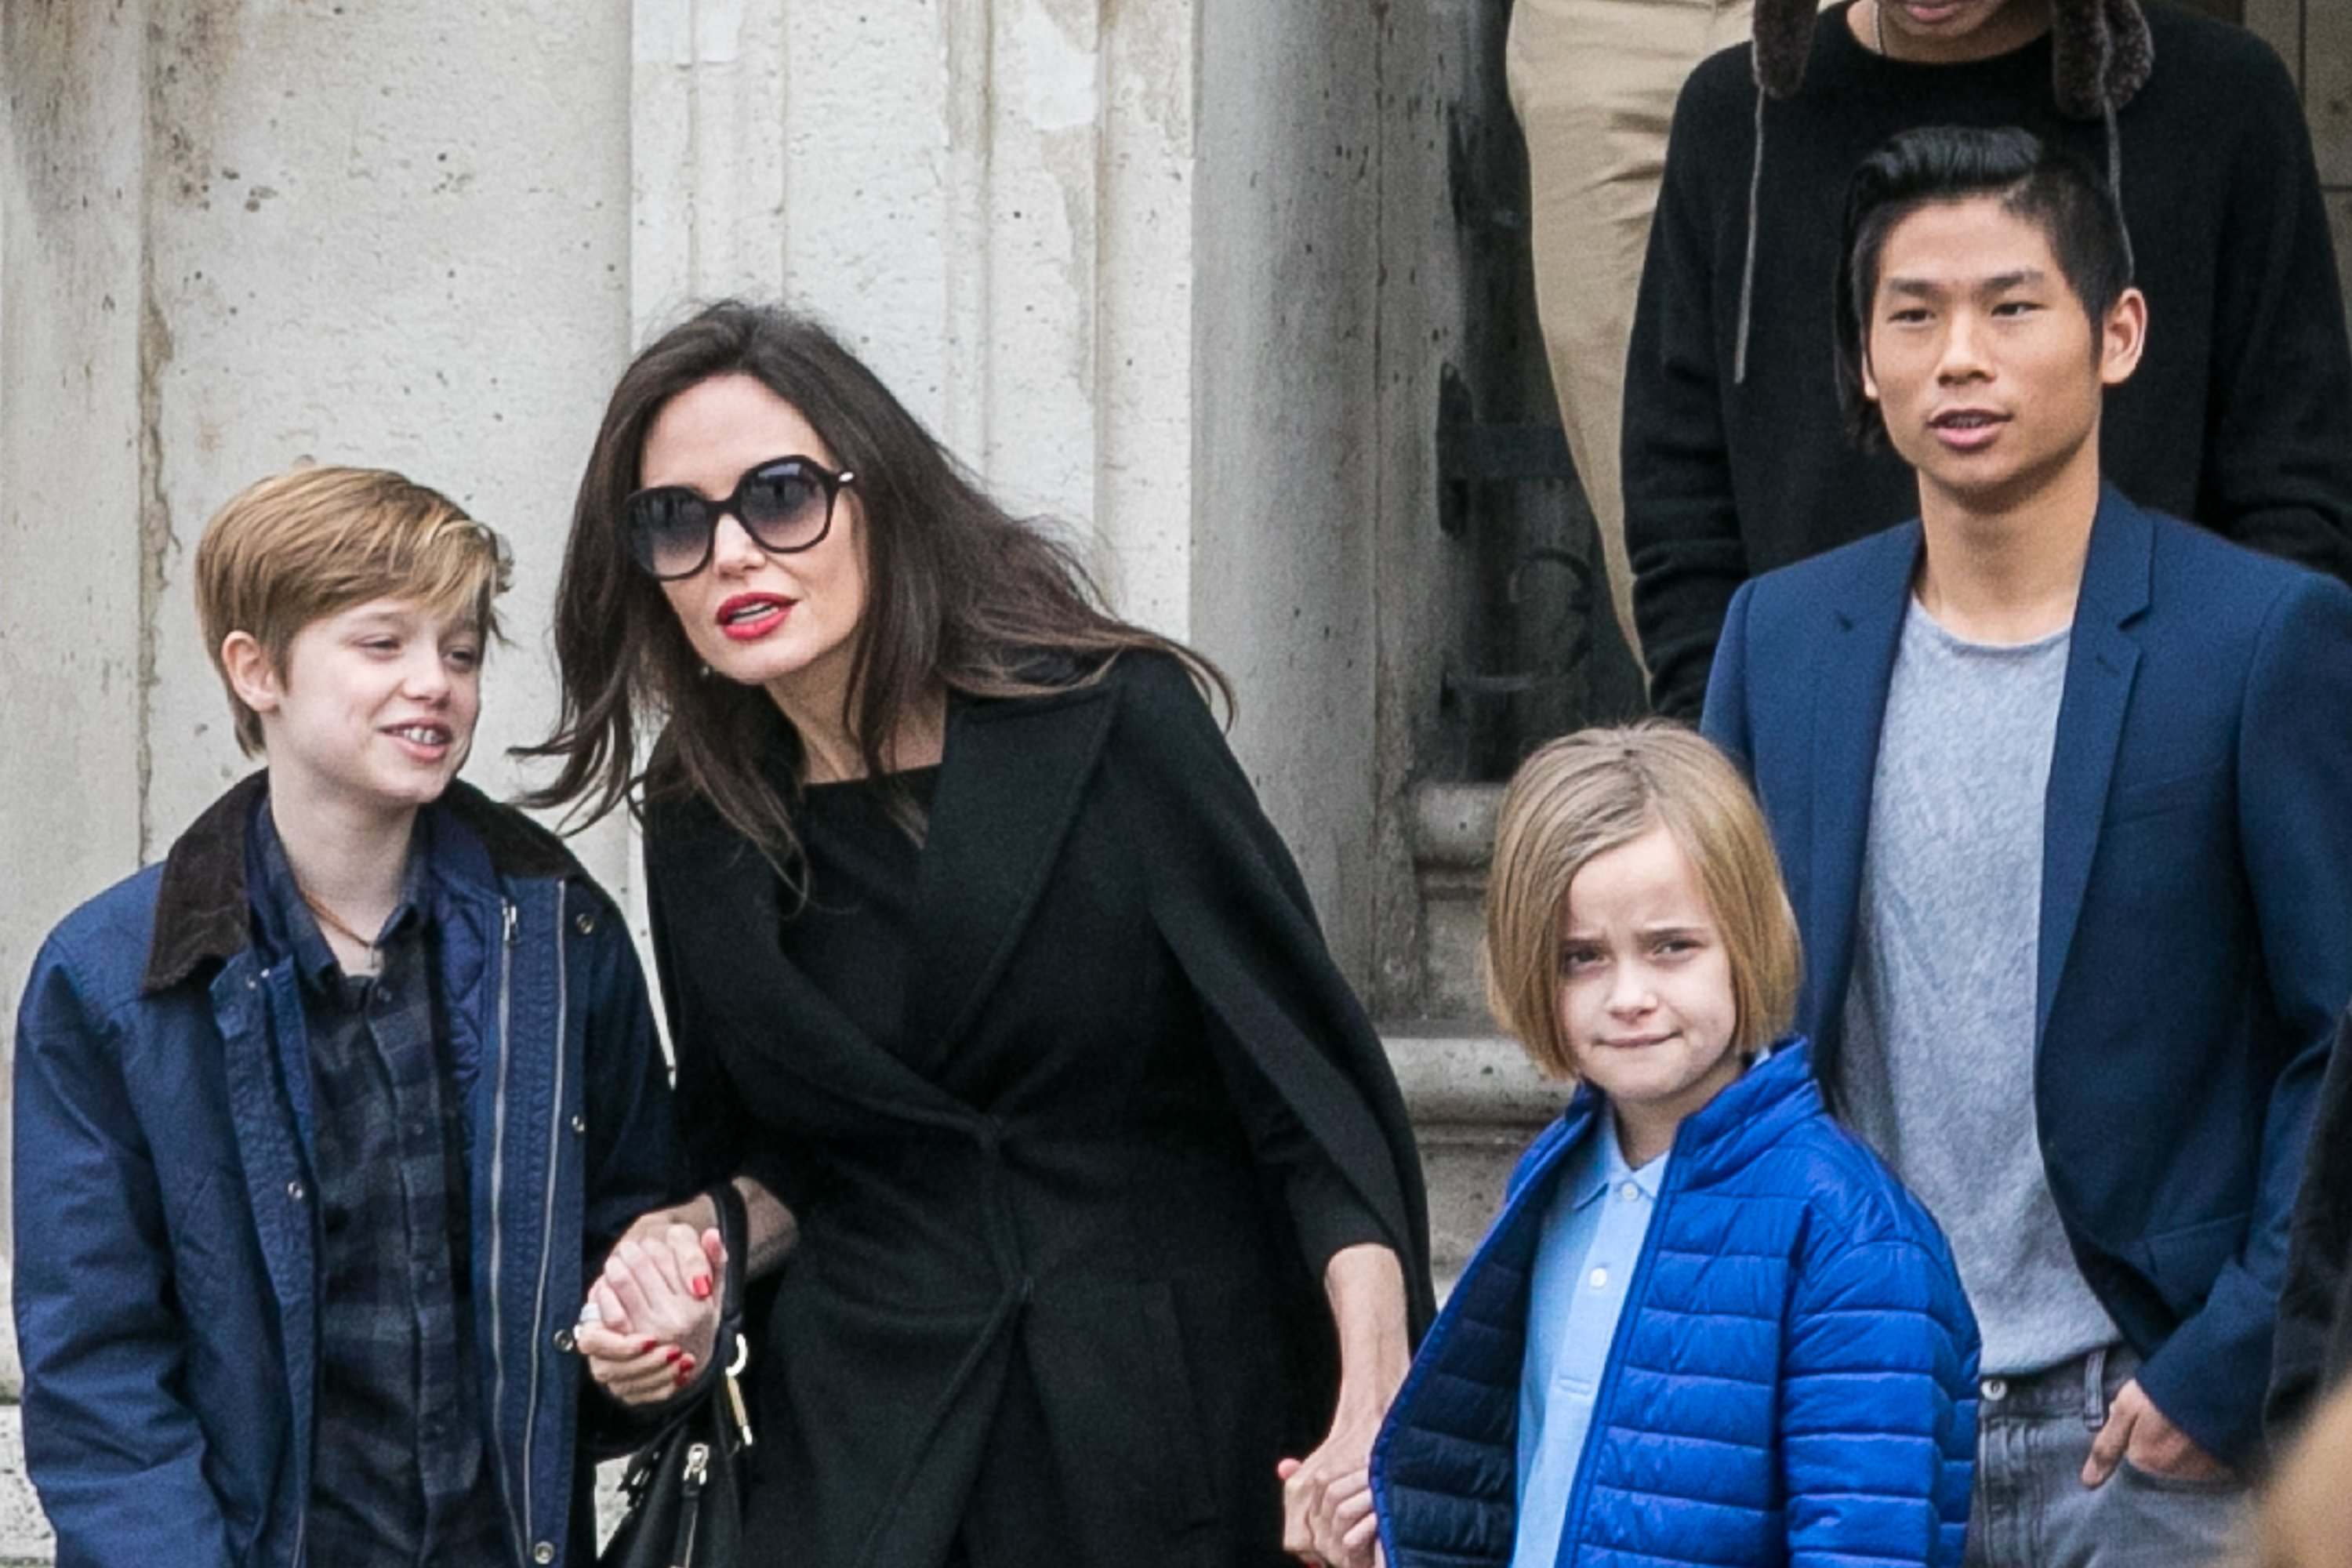 Image Credit: Getty Images/GC Images/Marc Piasecki | Jolie and her kids leaving theLouvre